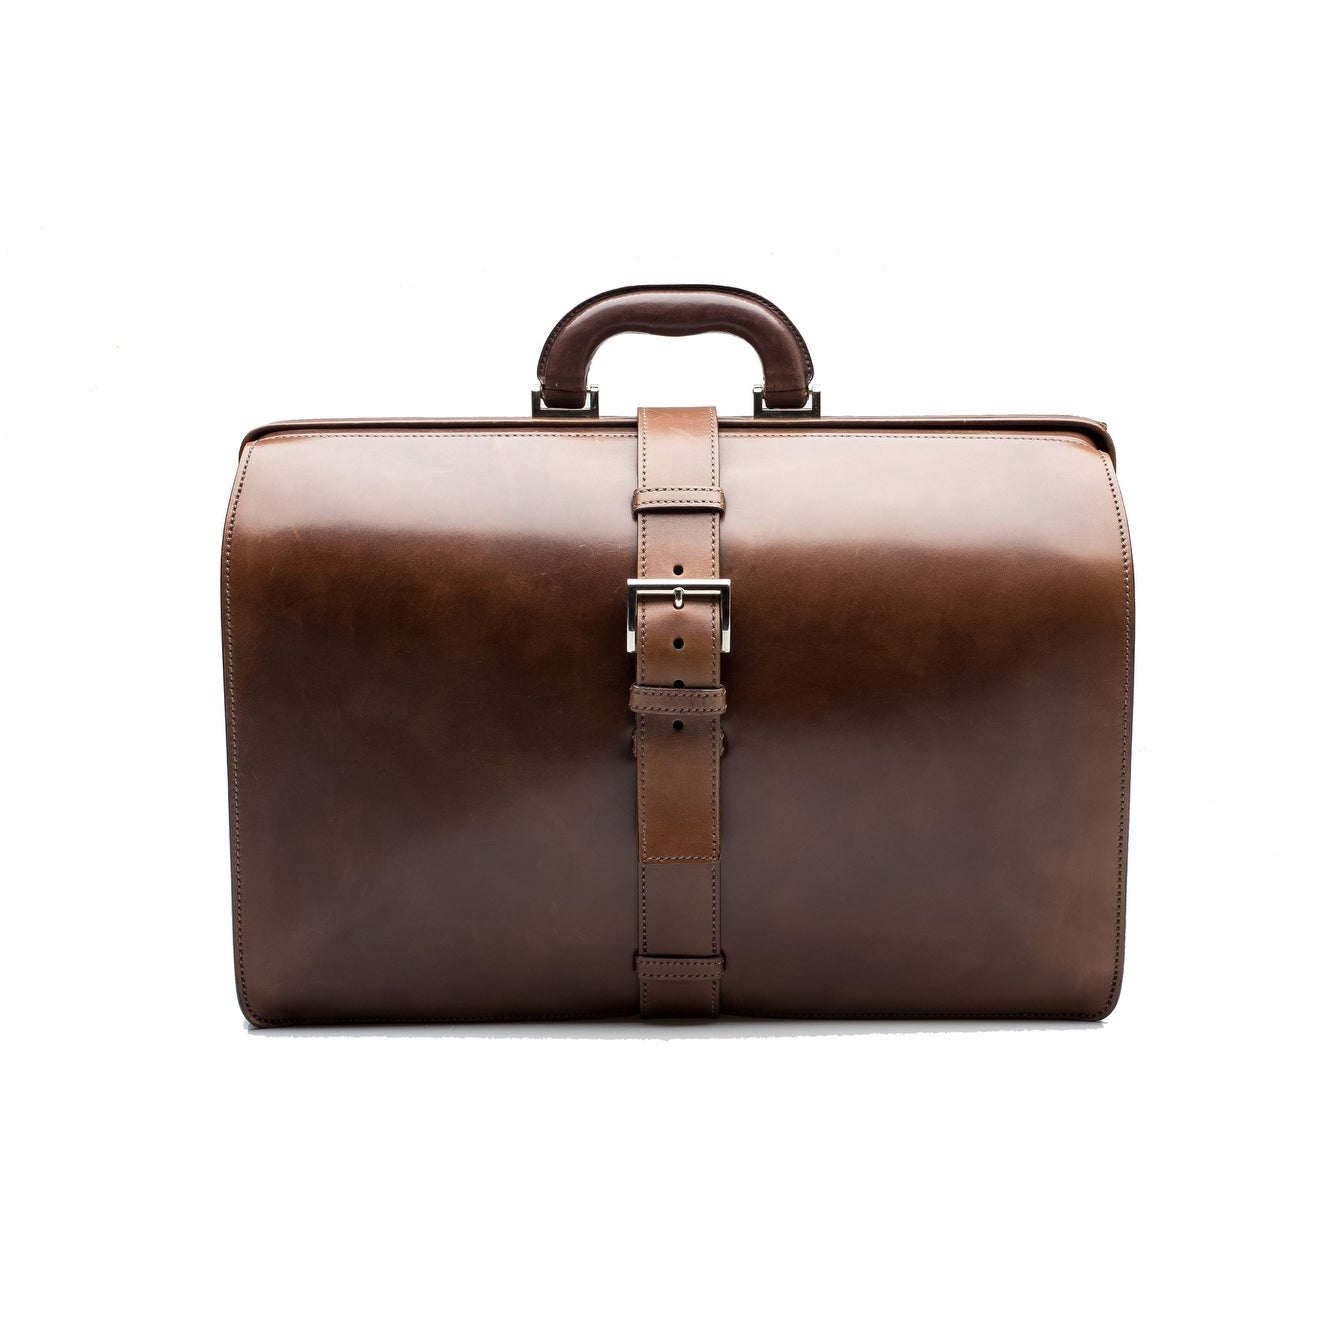 61d827aca Shop Prada Vintage Men's Women's Calf Leather Travel Suitcase Luggage Dark  Brown - M - Free Shipping Today - Overstock - 14477192